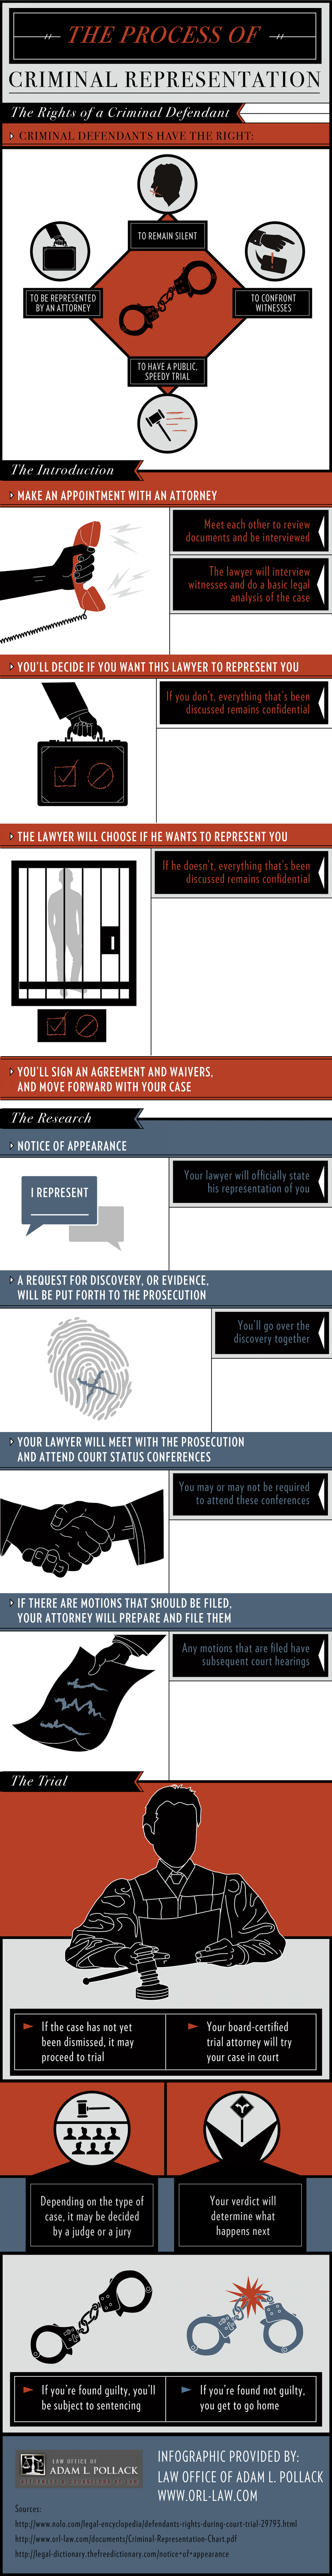 The Process of Criminal Representation Infographic